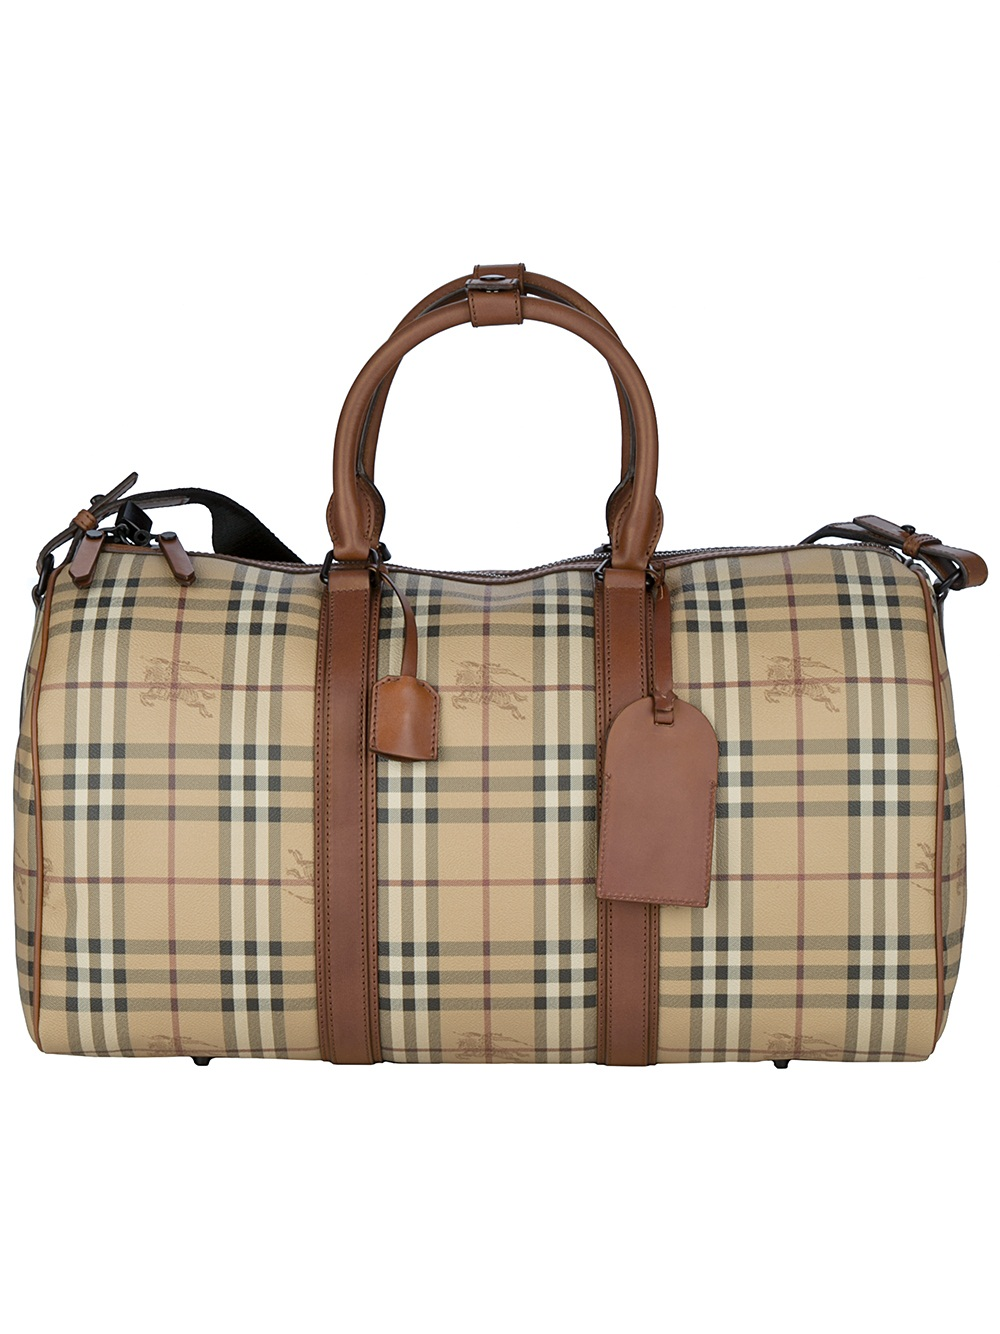 1a87bc0f326c Lyst - Burberry Haymarket Holdall Bag in Brown for Men